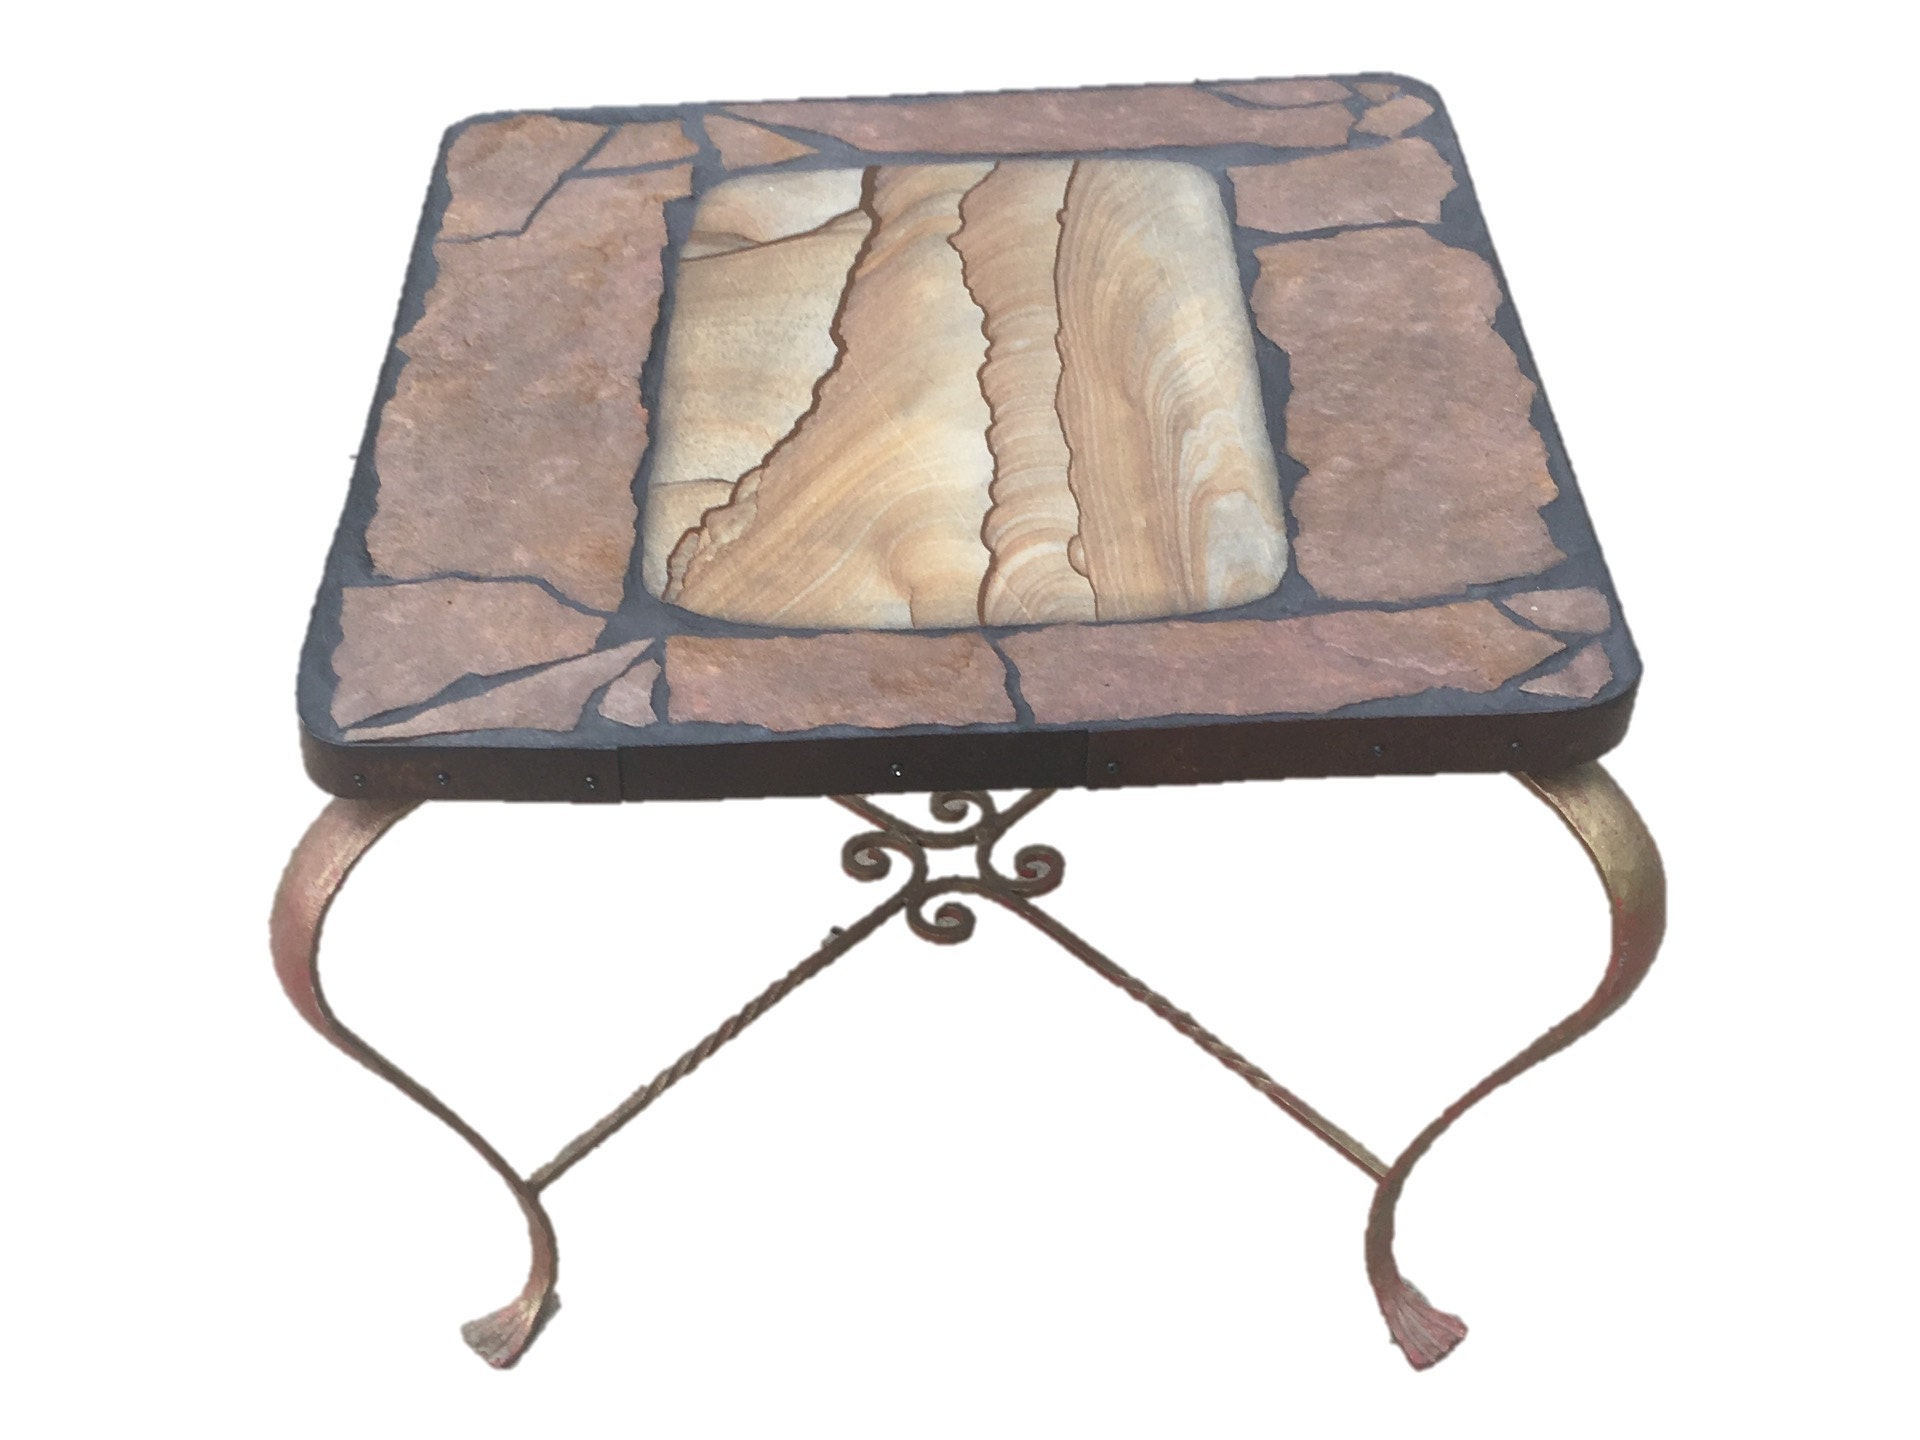 Jims Table: A natural stone toped table featuring a slab of painted sandstone from Knab, Utah